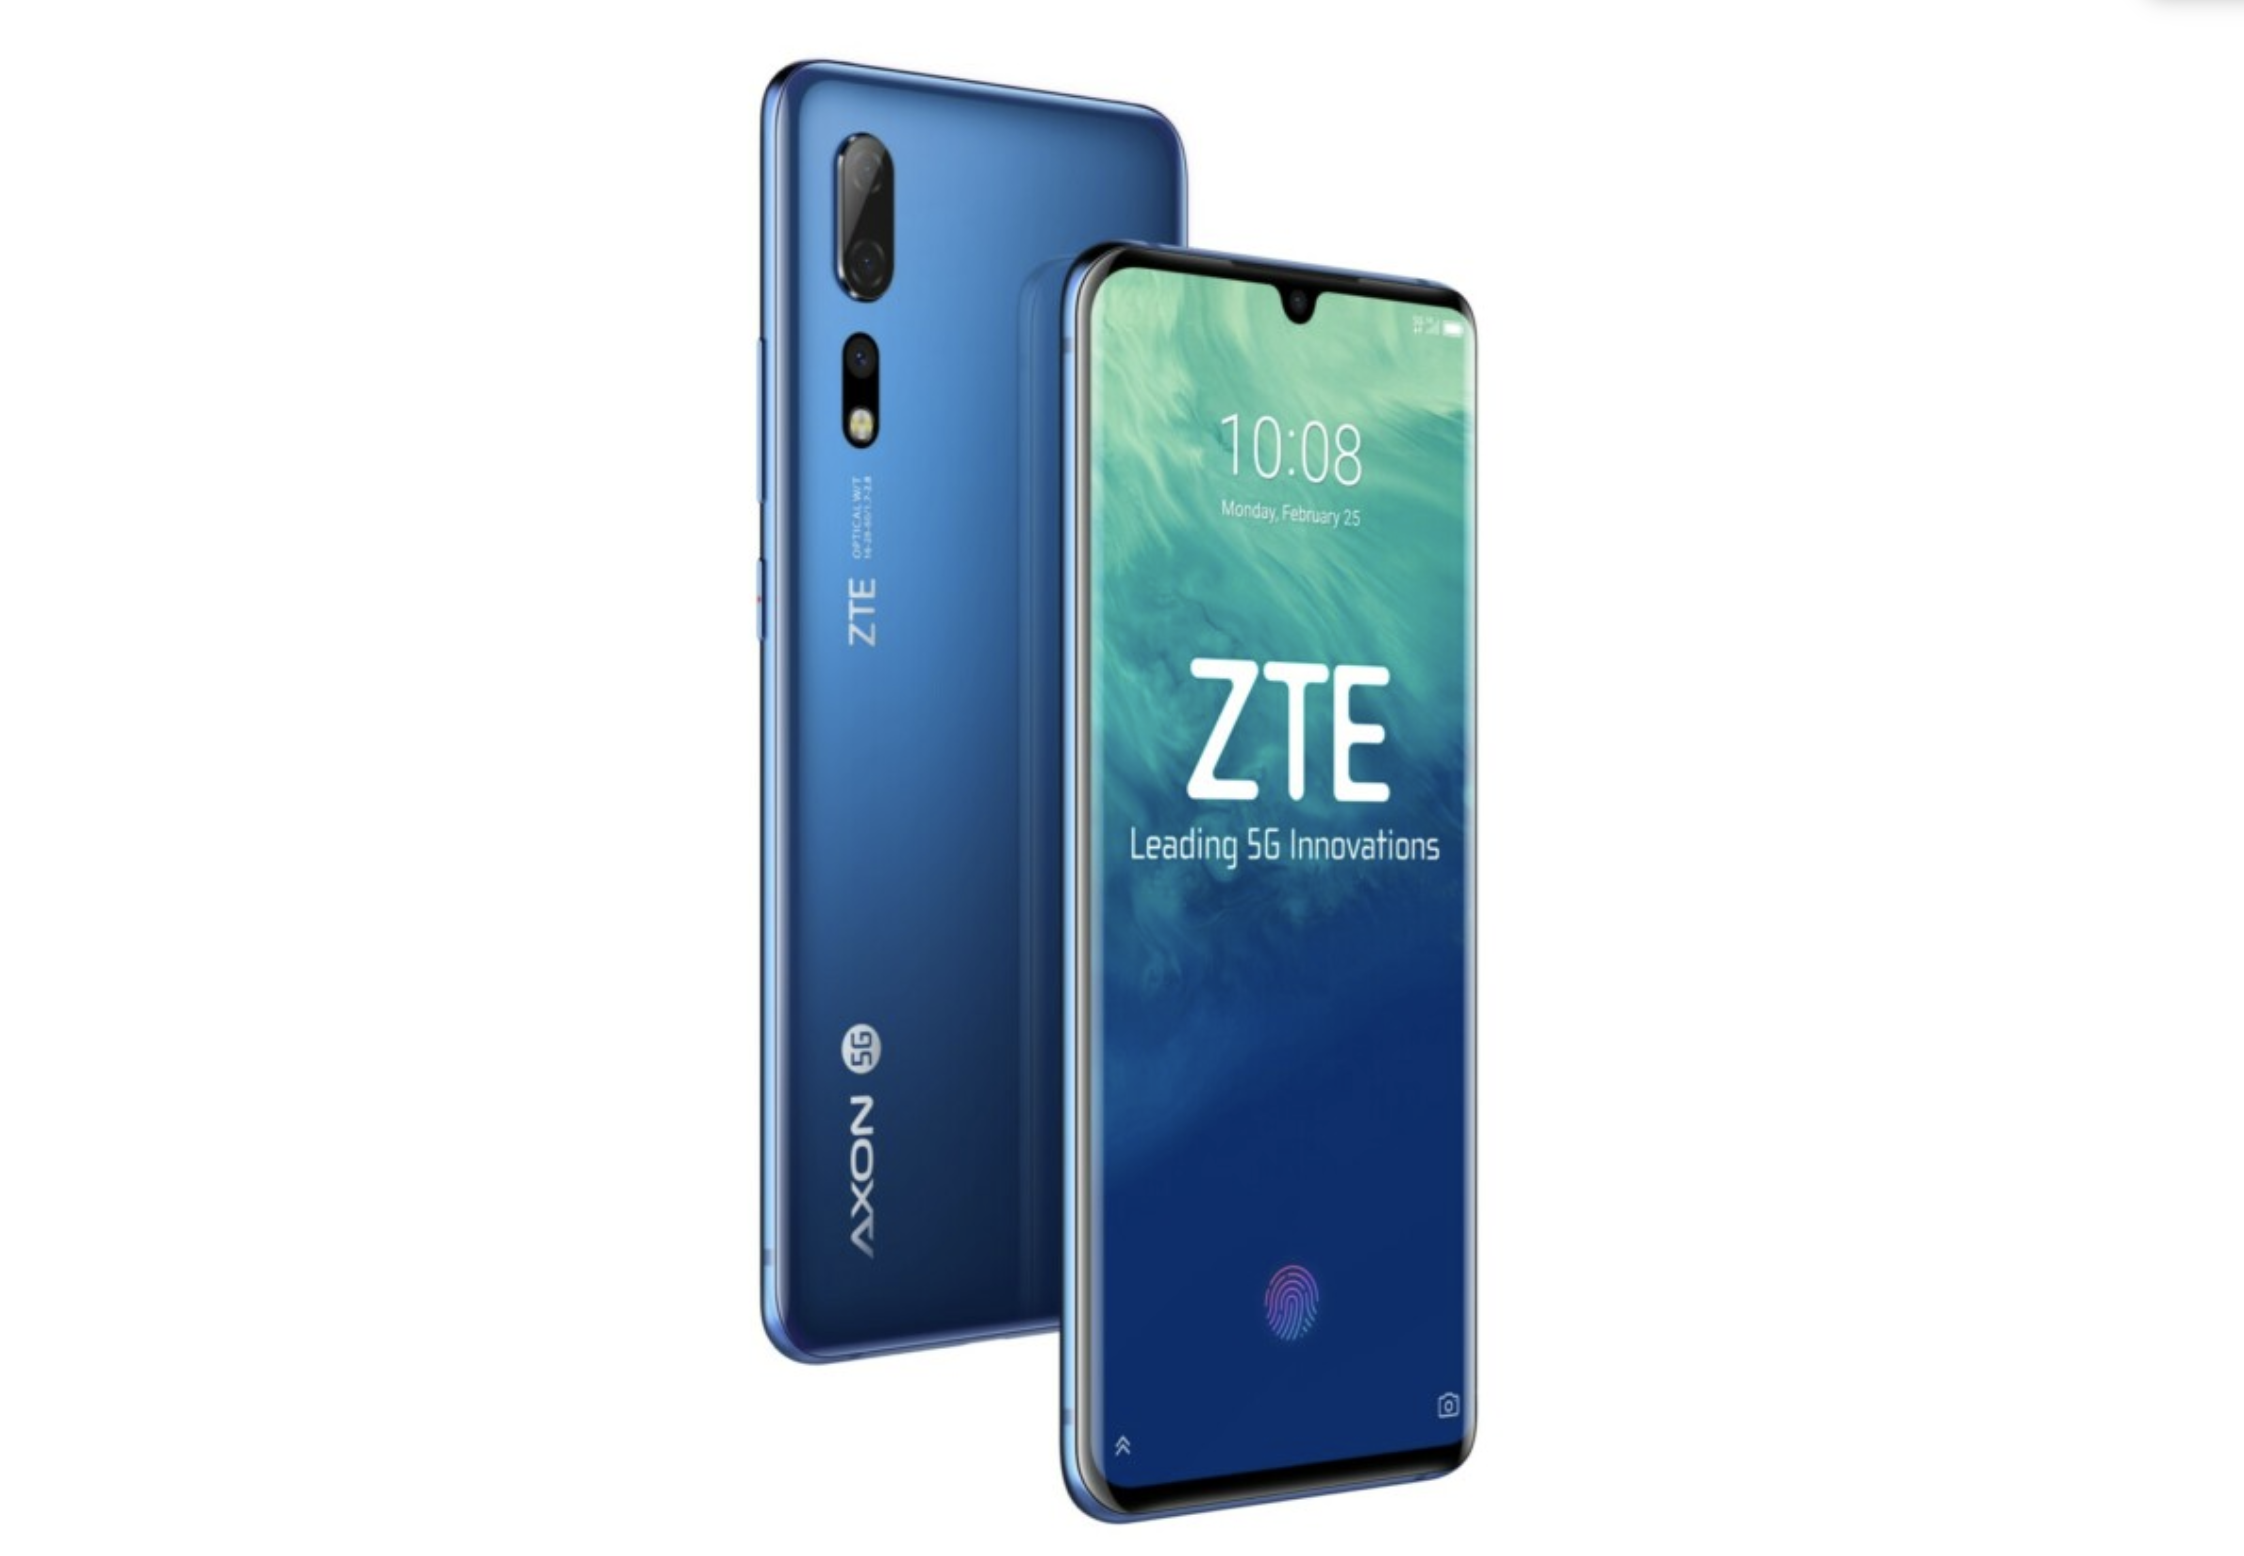 Don't worry, ZTE has a 5G phone, too | TechCrunch